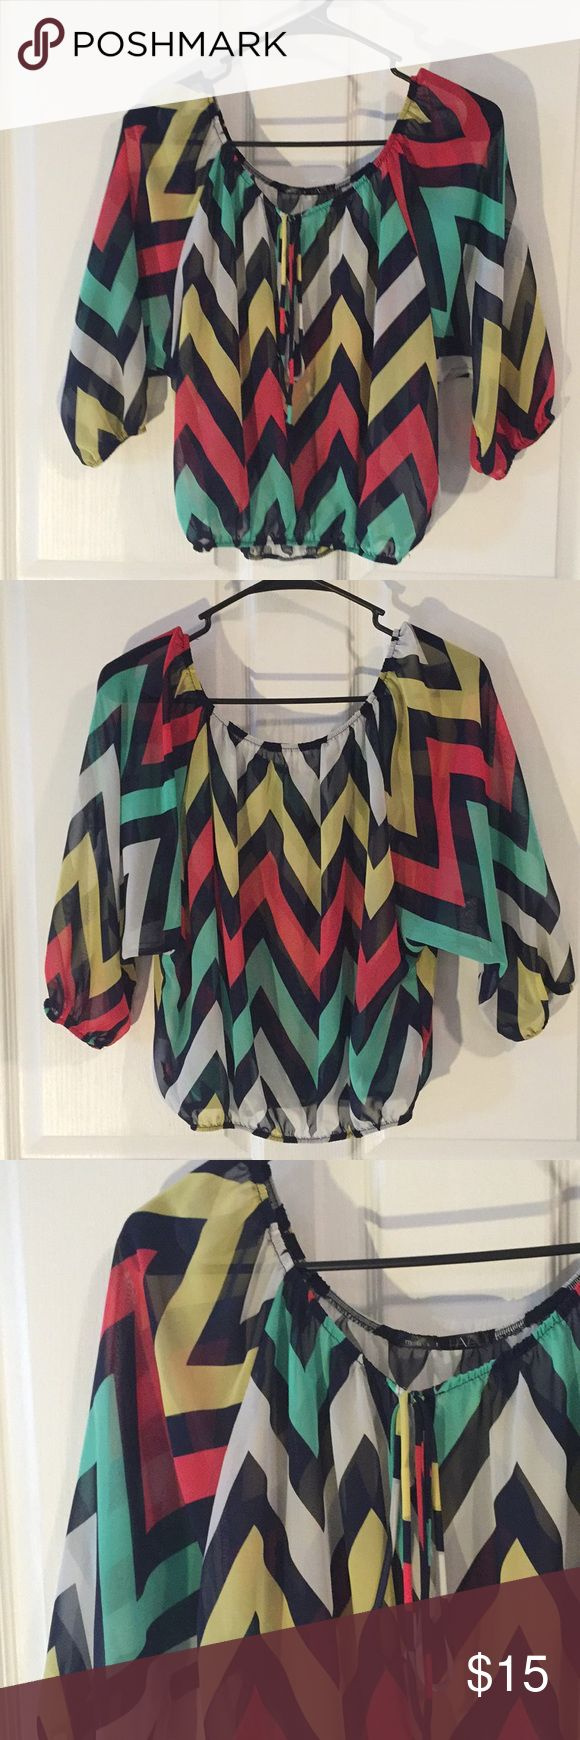 Chevron top Navy, red, yellow, green and white chevron pattern. Tops Blouses